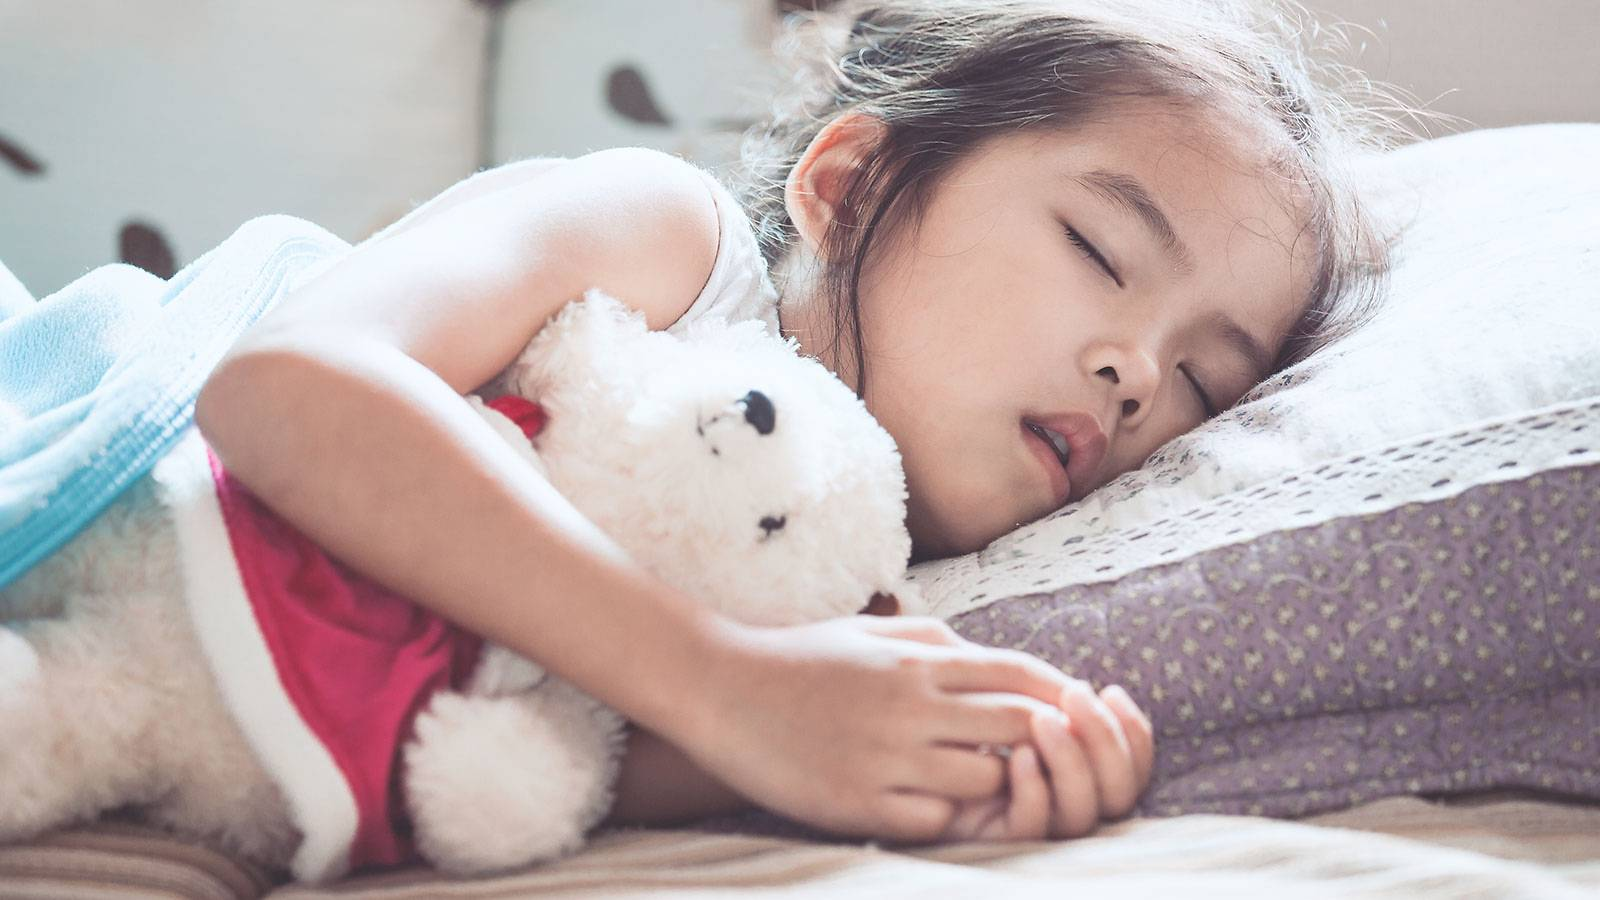 Tots-3-simple-steps-to-tell-if-your-child-has-Obstructive-Sleep-Apnea-1